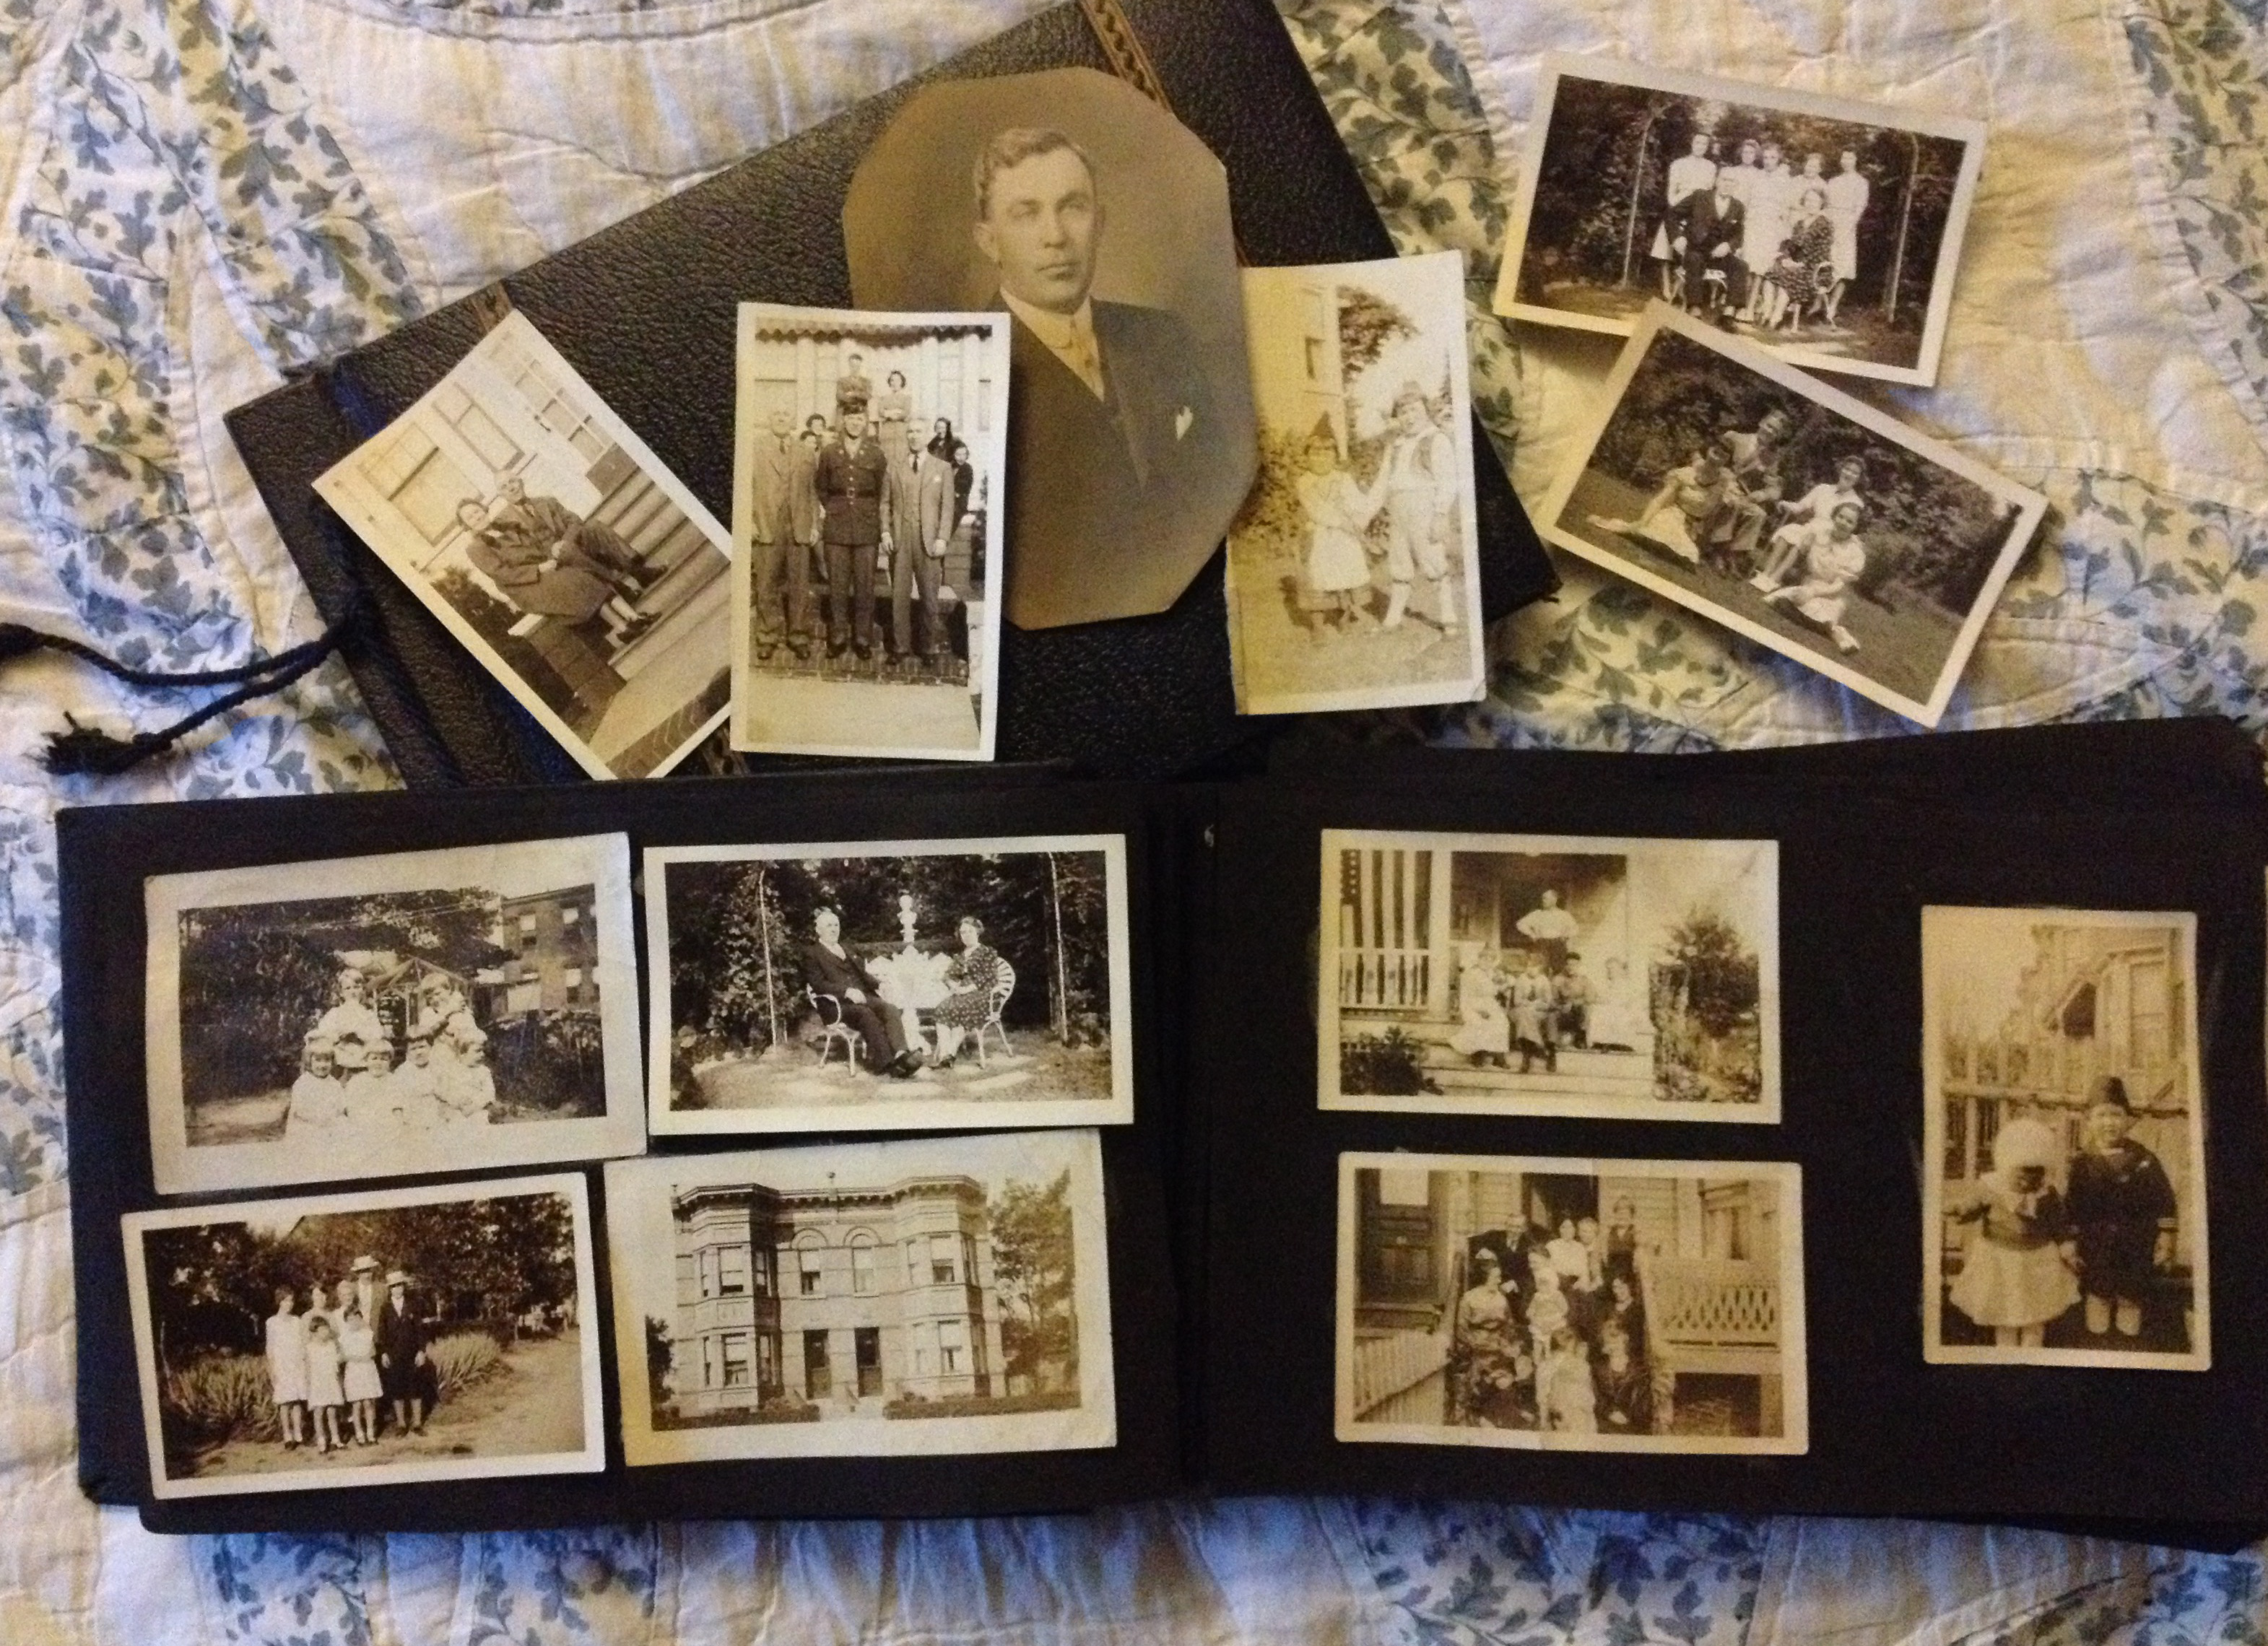 where can i find family photo albums